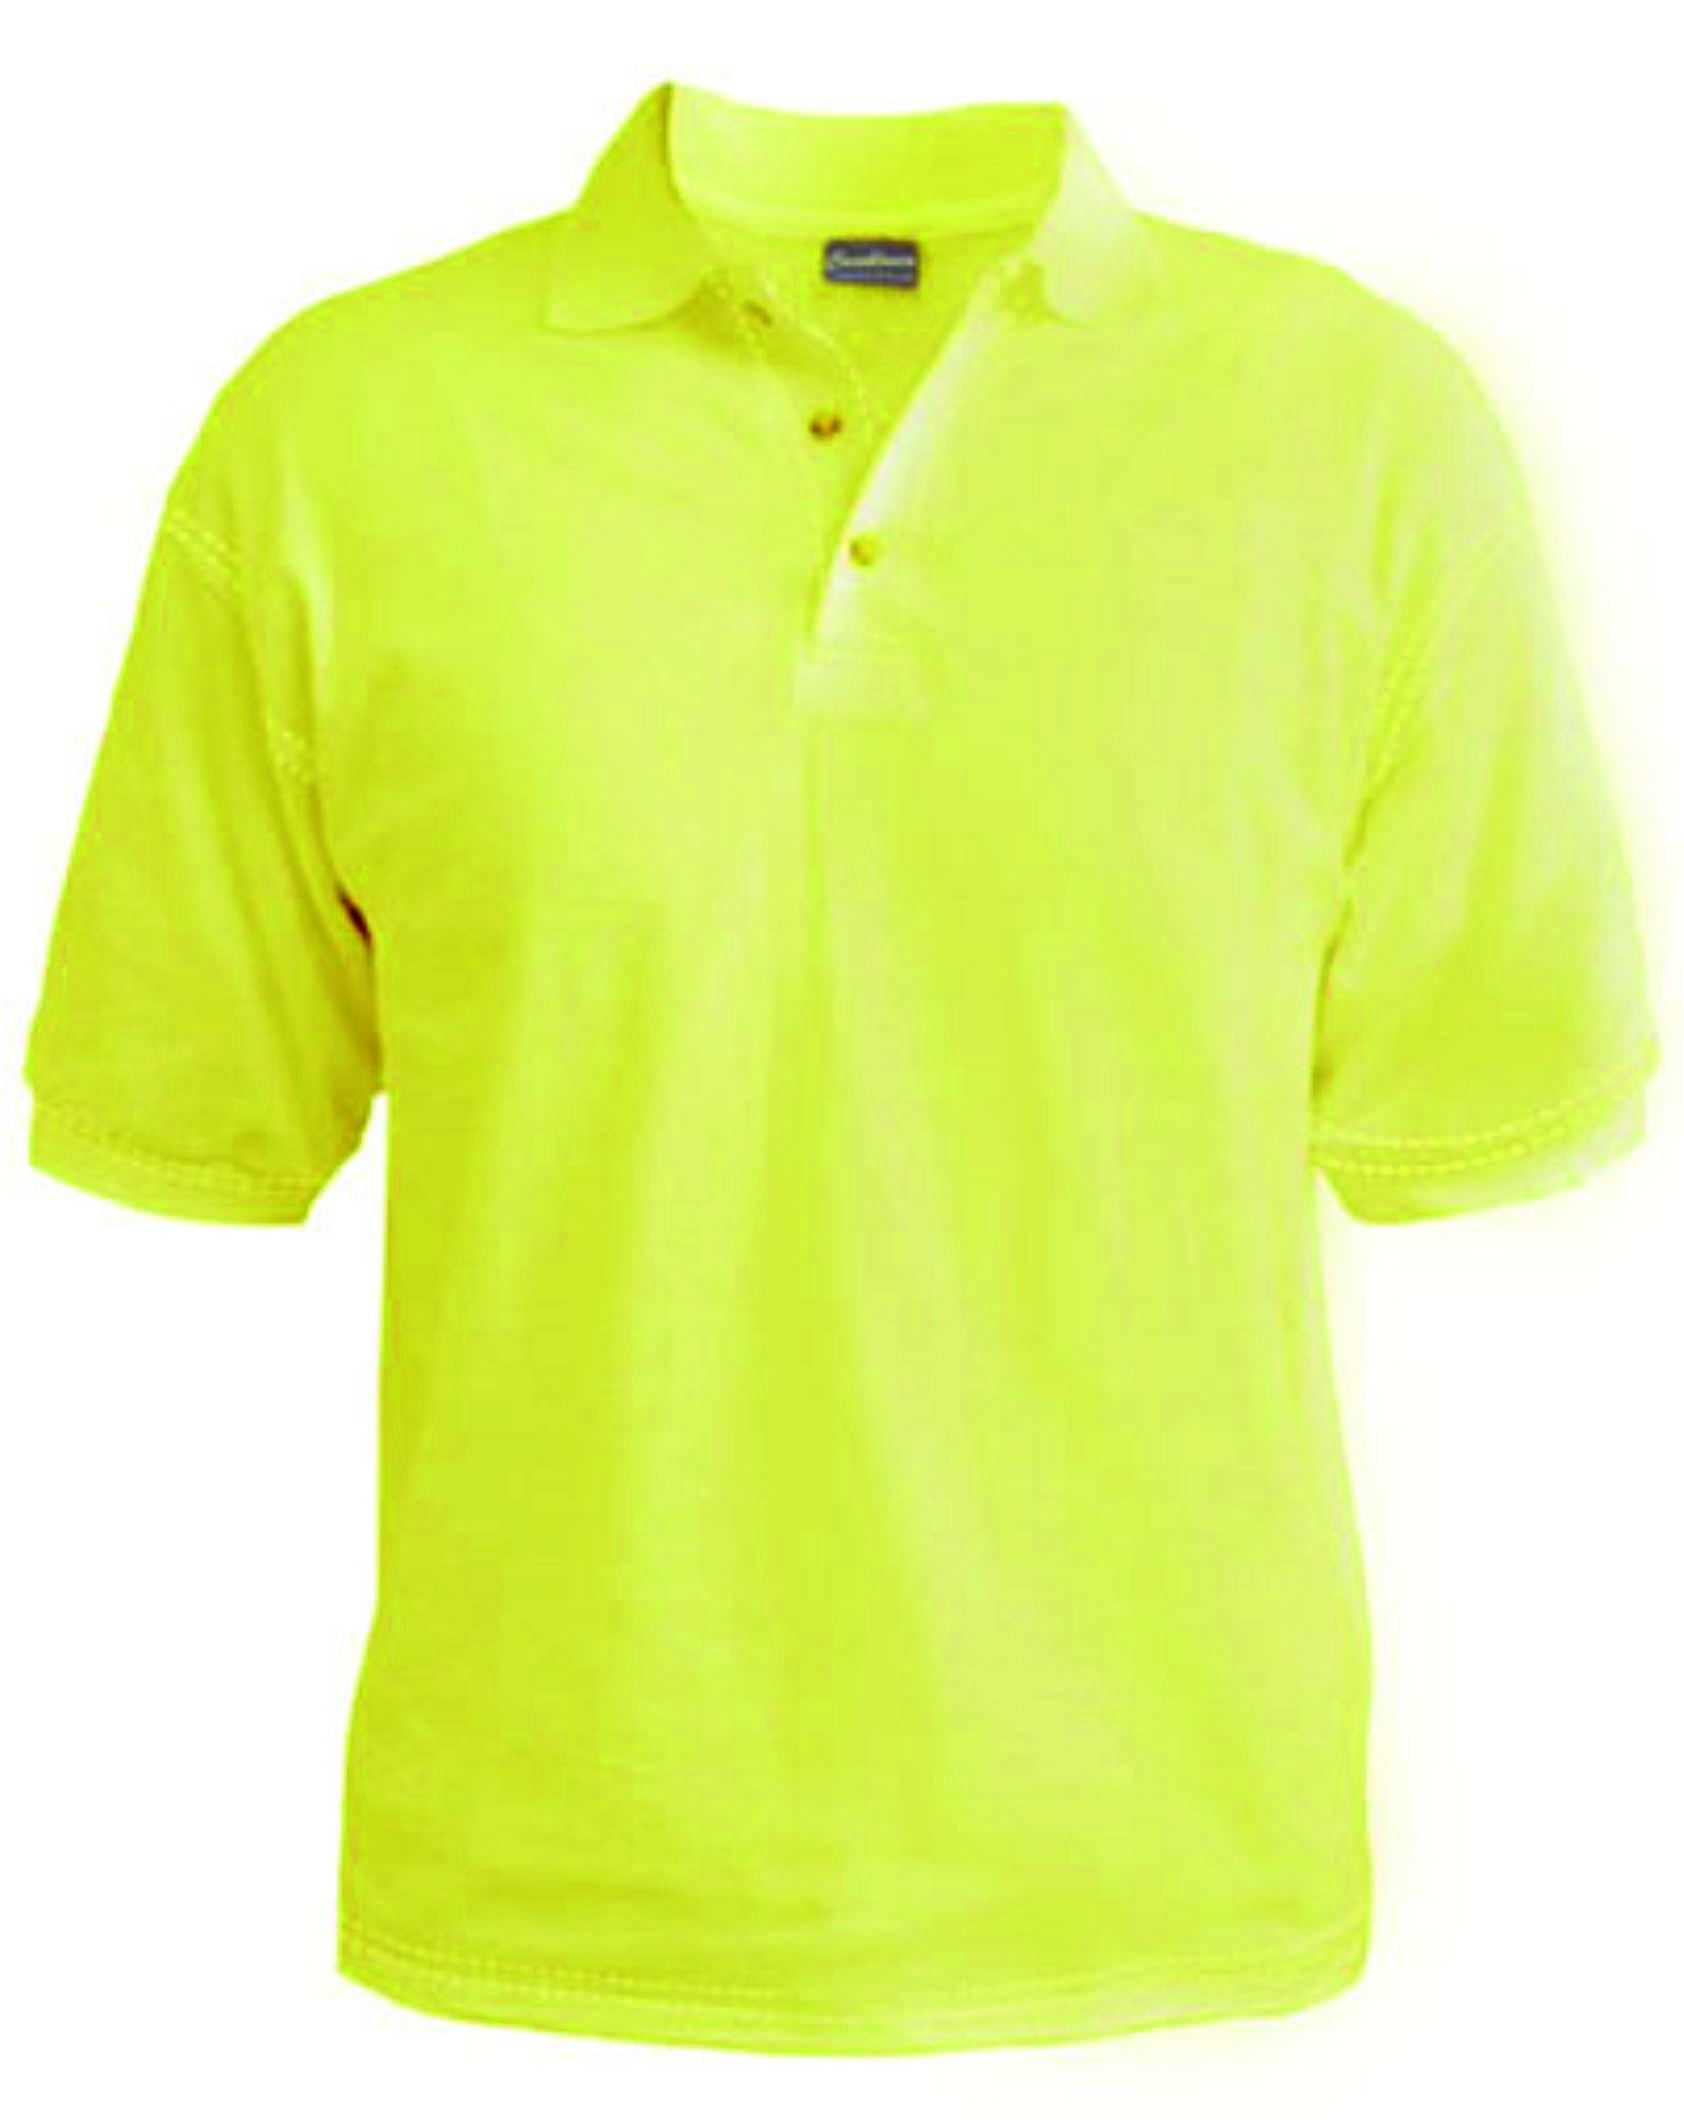 Yellow Striped Shirt Amazoncom